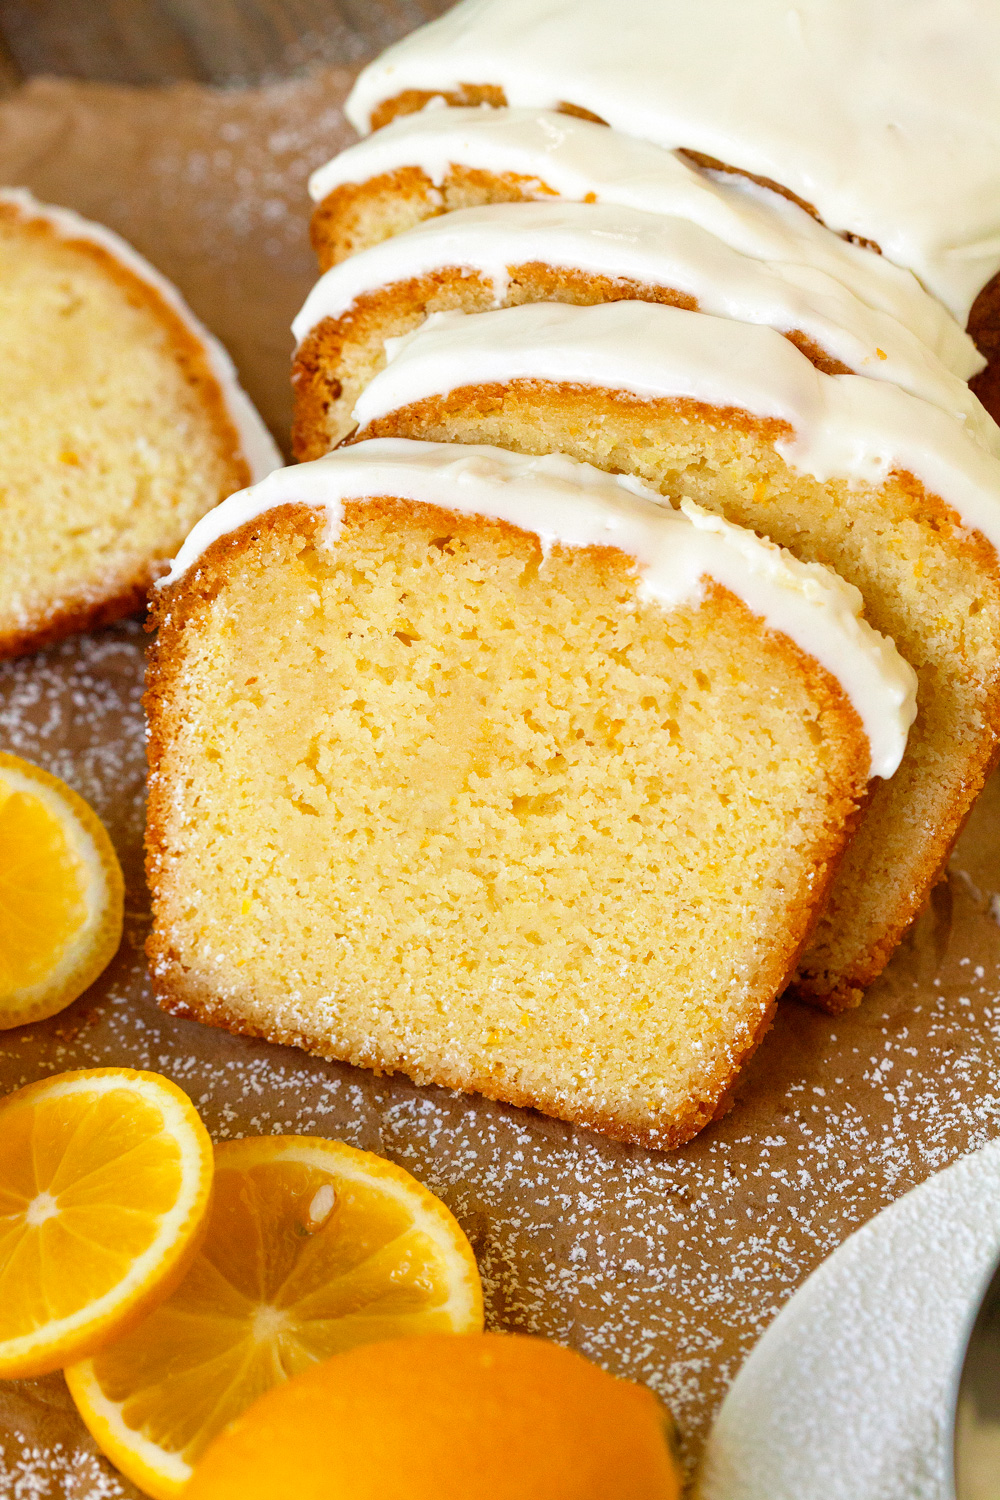 Glazed Lemon Poke Cake